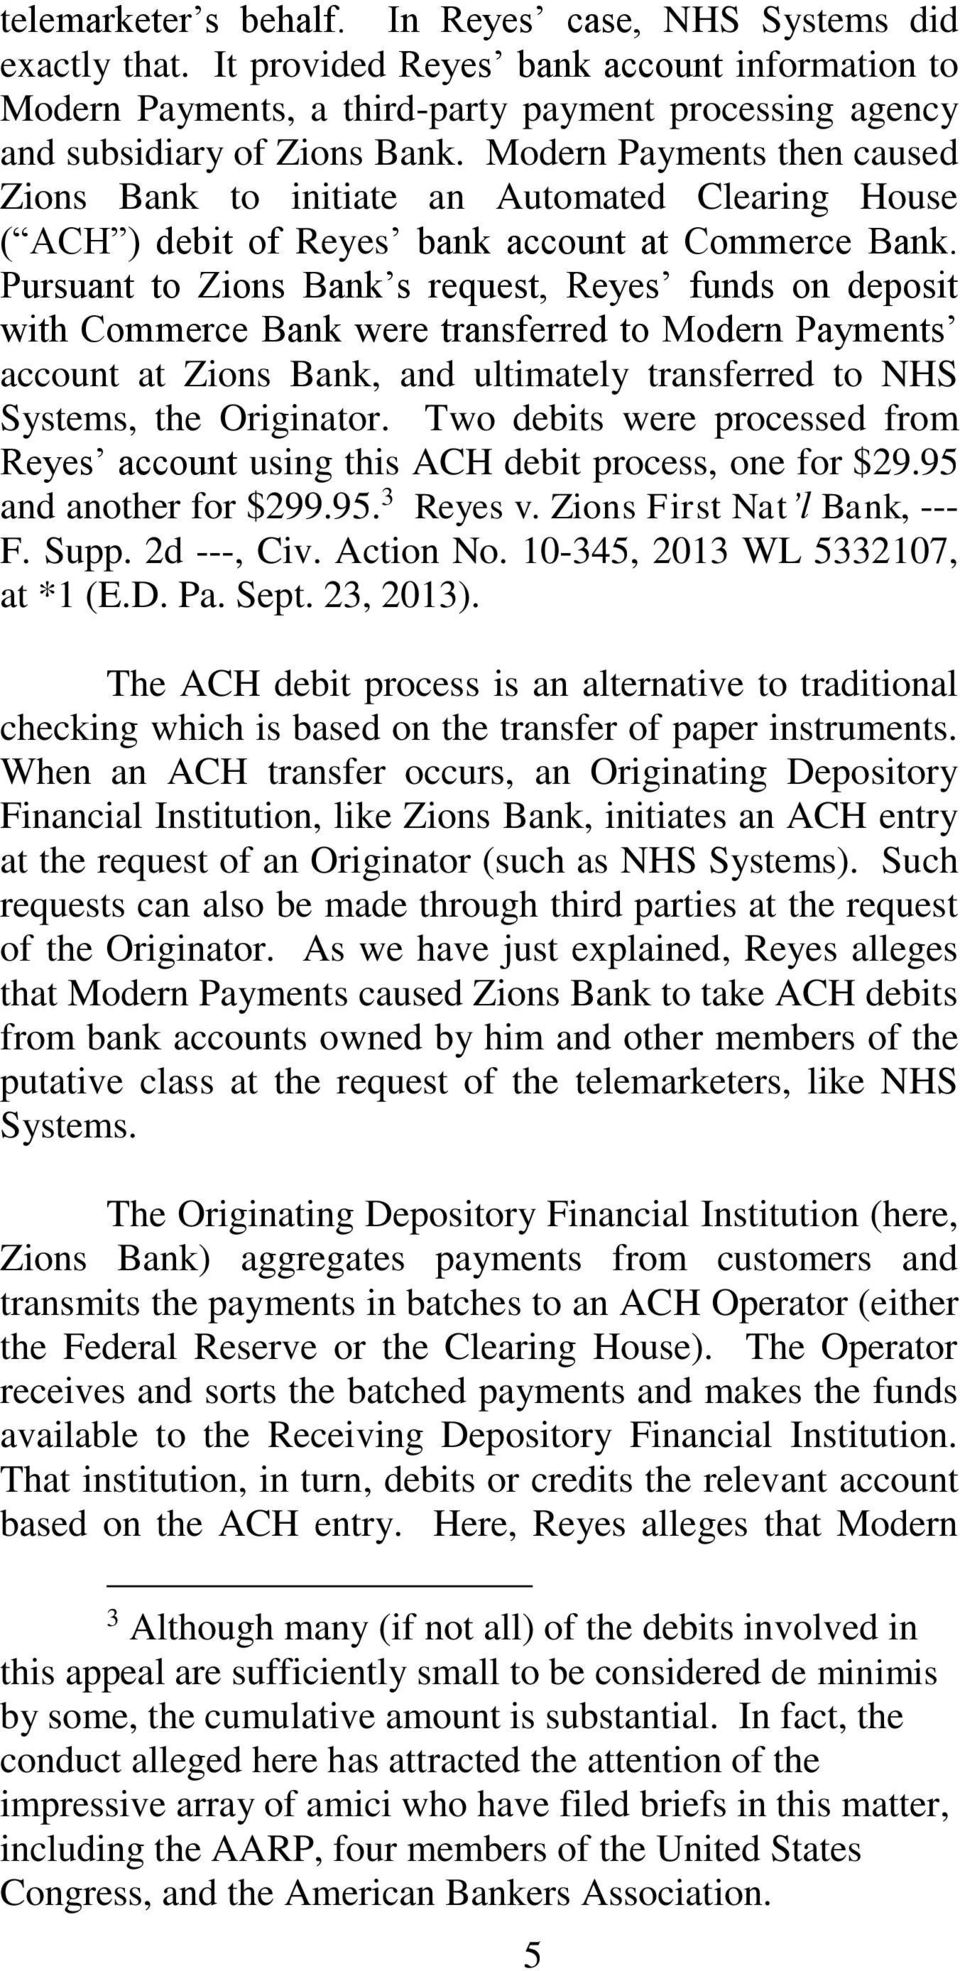 Pursuant to Zions Bank s request, Reyes funds on deposit with Commerce Bank were transferred to Modern Payments account at Zions Bank, and ultimately transferred to NHS Systems, the Originator.